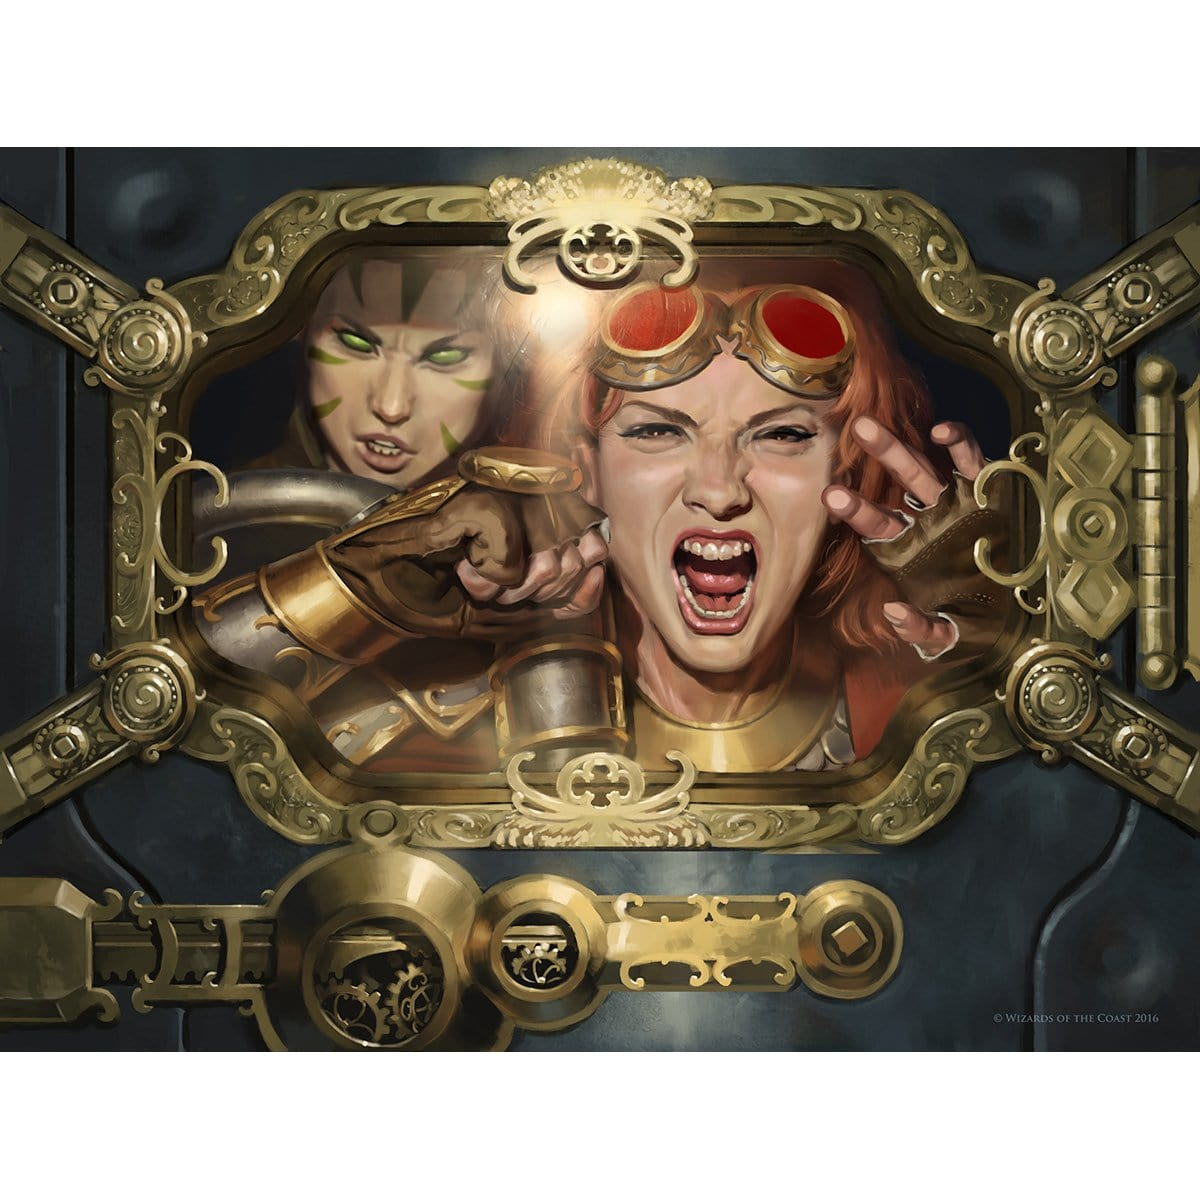 Deadlock Trap Print - Print - Original Magic Art - Accessories for Magic the Gathering and other card games